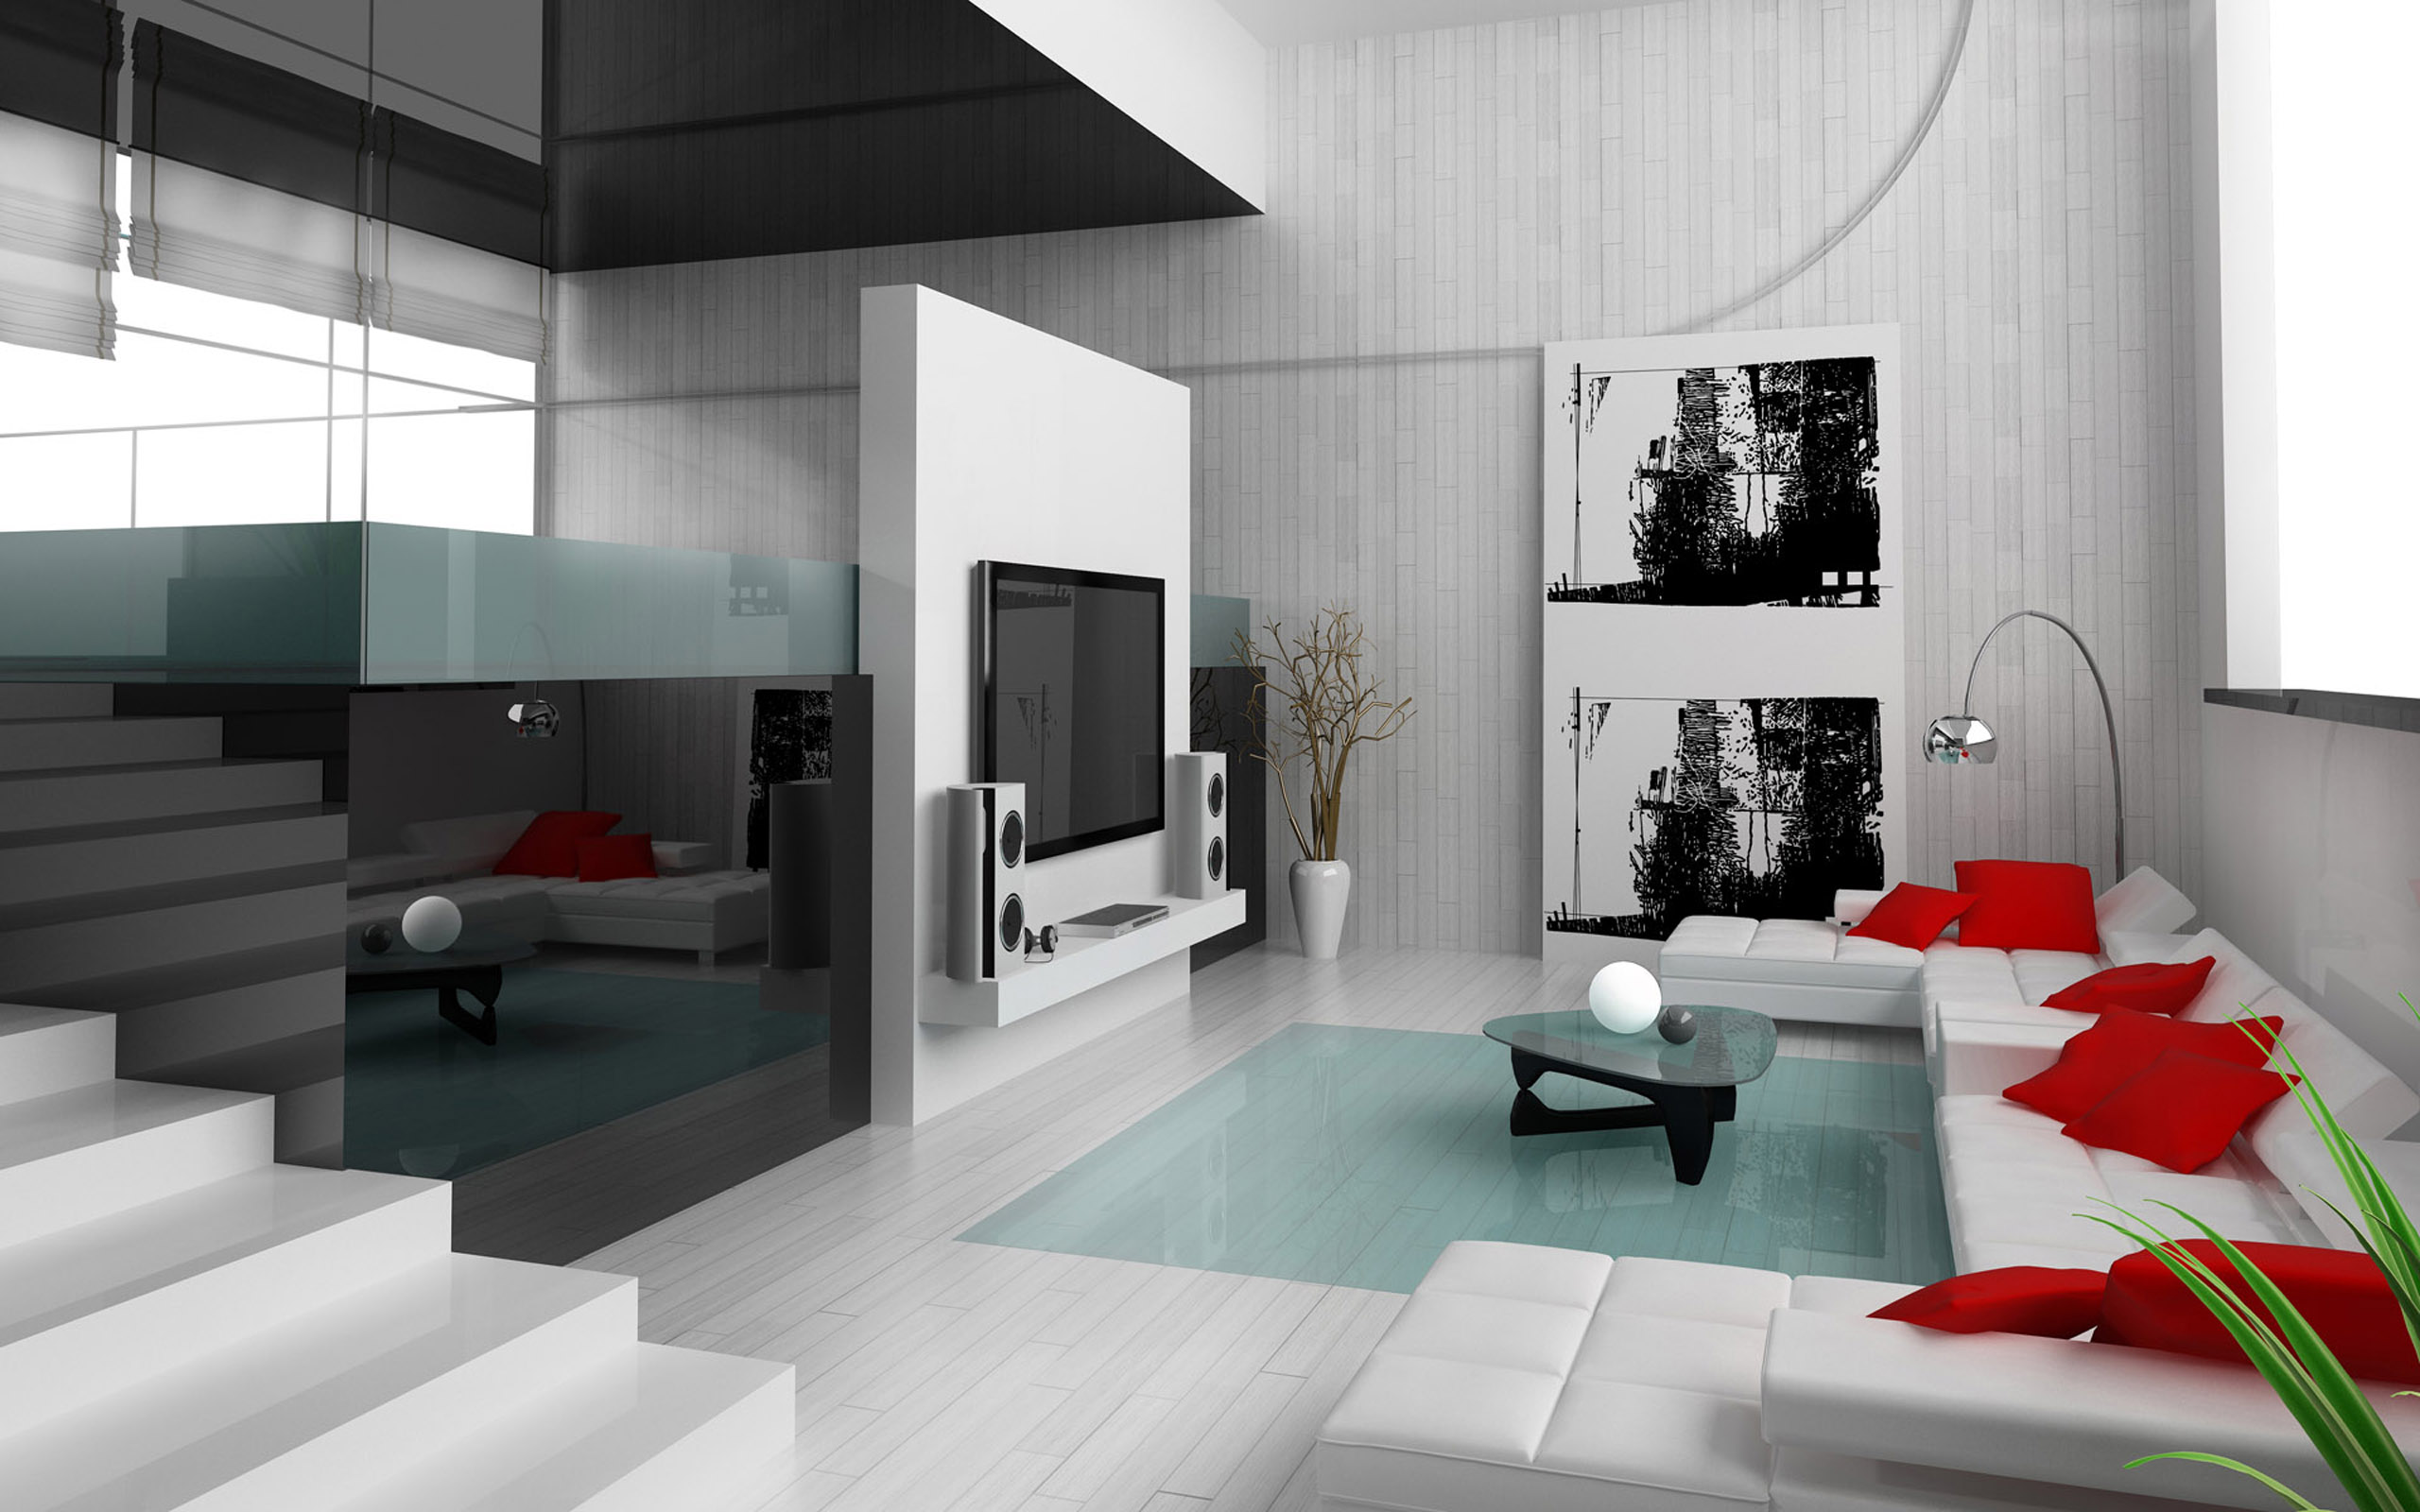 affordable home interior wallpapers with  Wallpaper Design For Home Ideas  About Black And White Wallpaper. House Wallpaper Designs